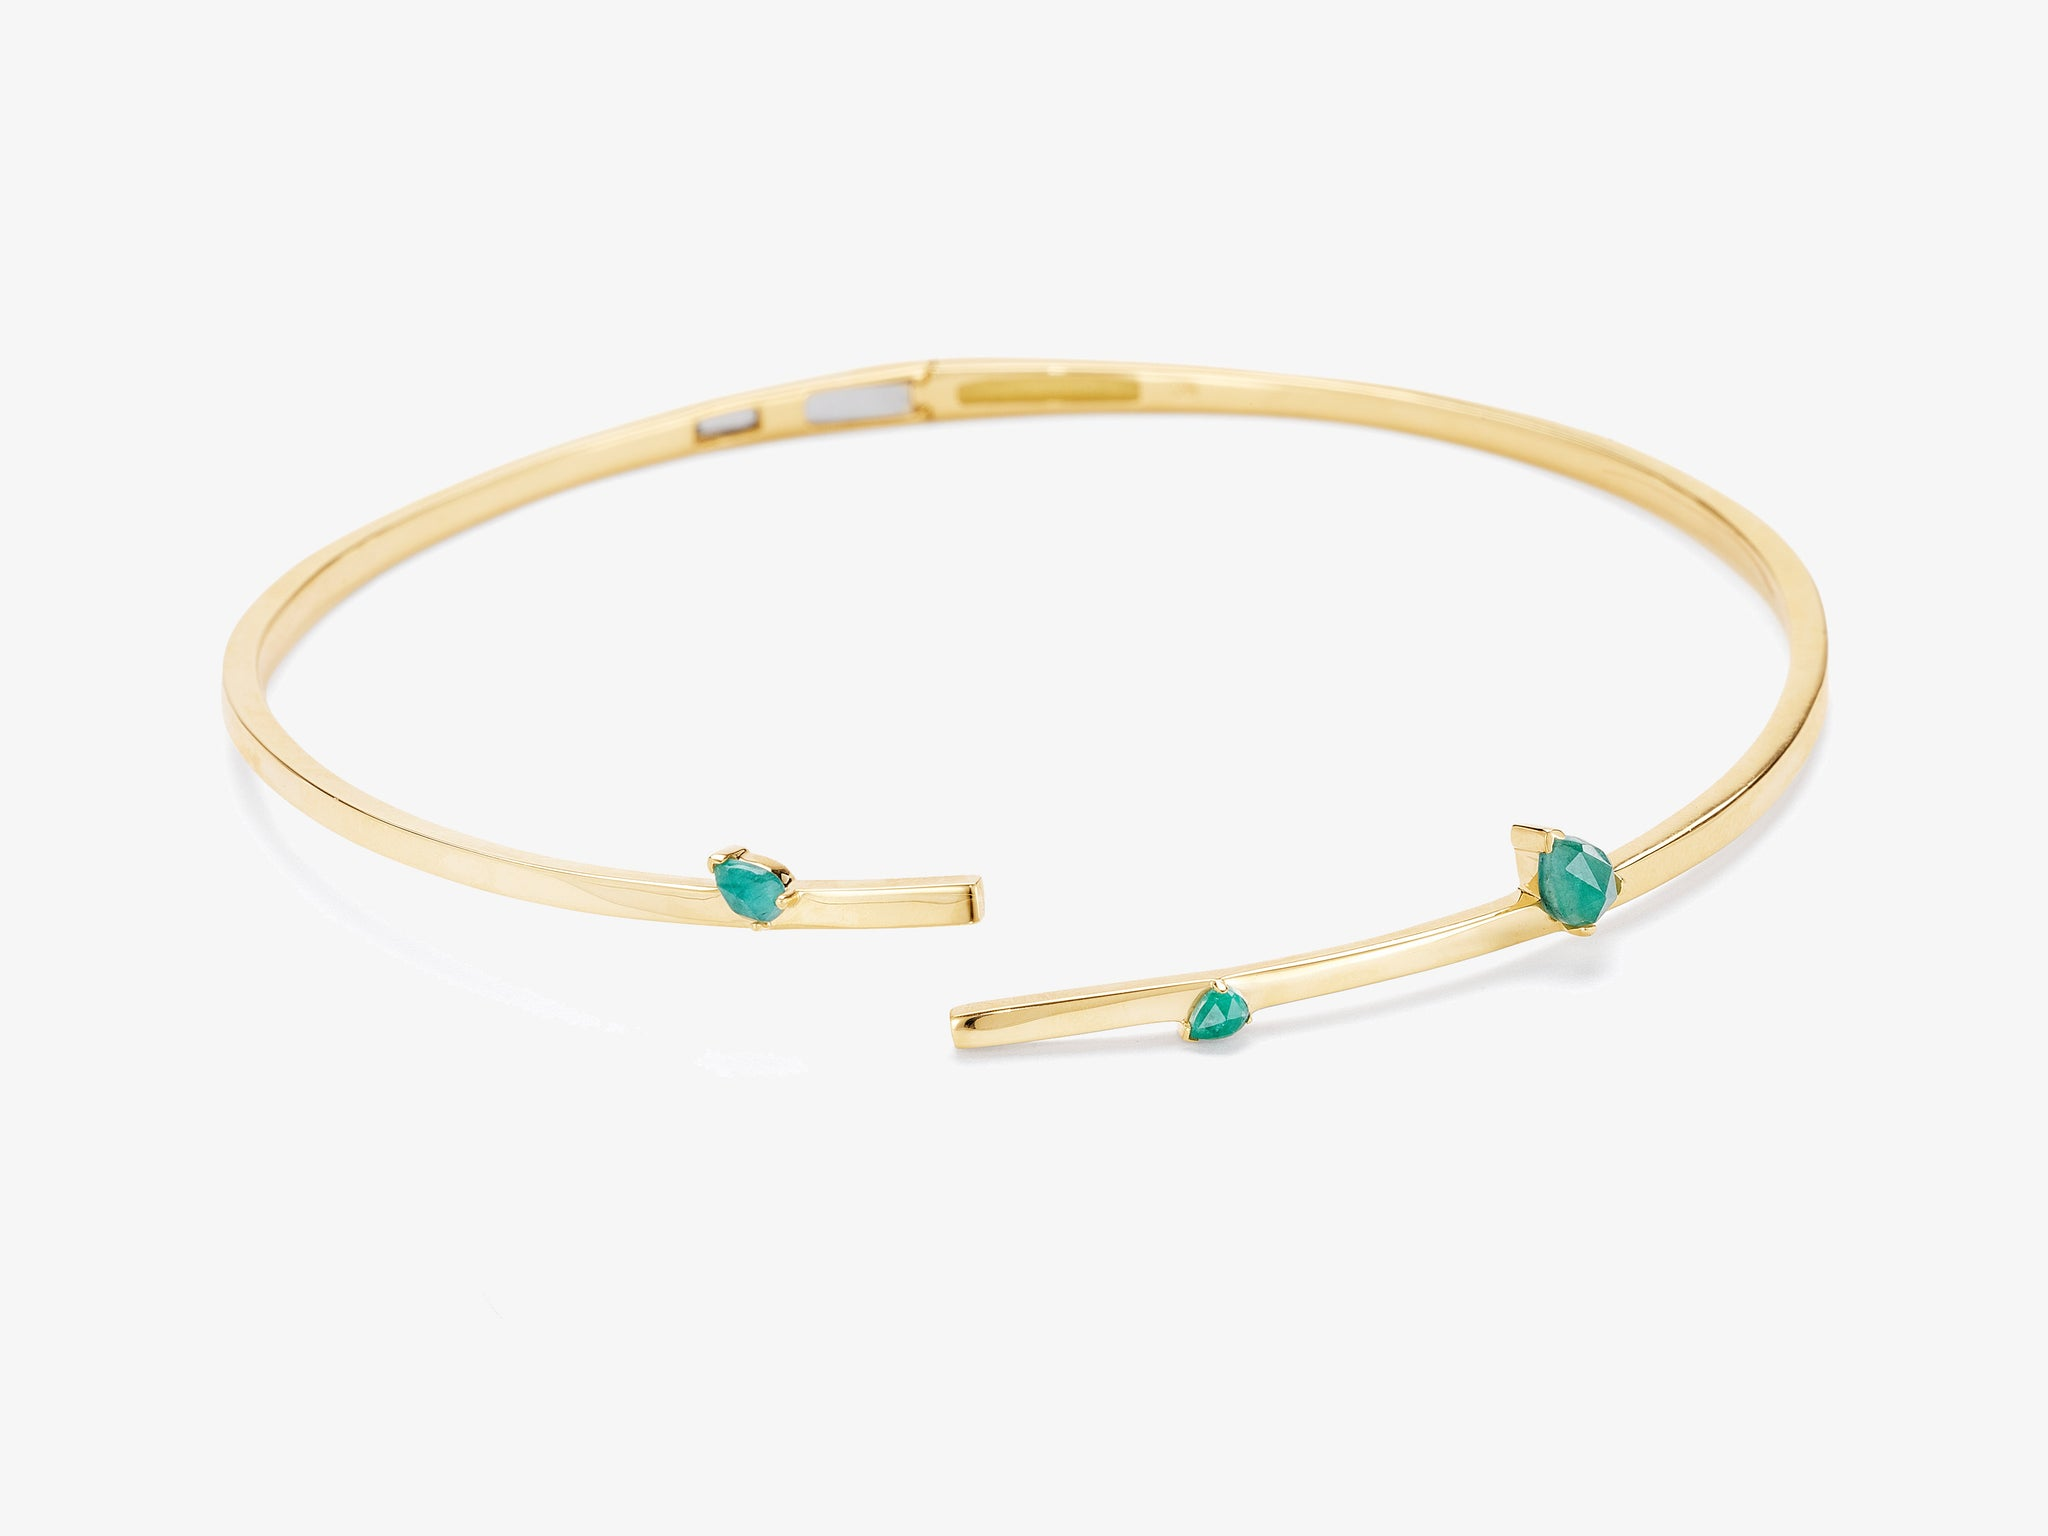 Asymmetrical Hinged Collar with Pear Shaped Gemstone